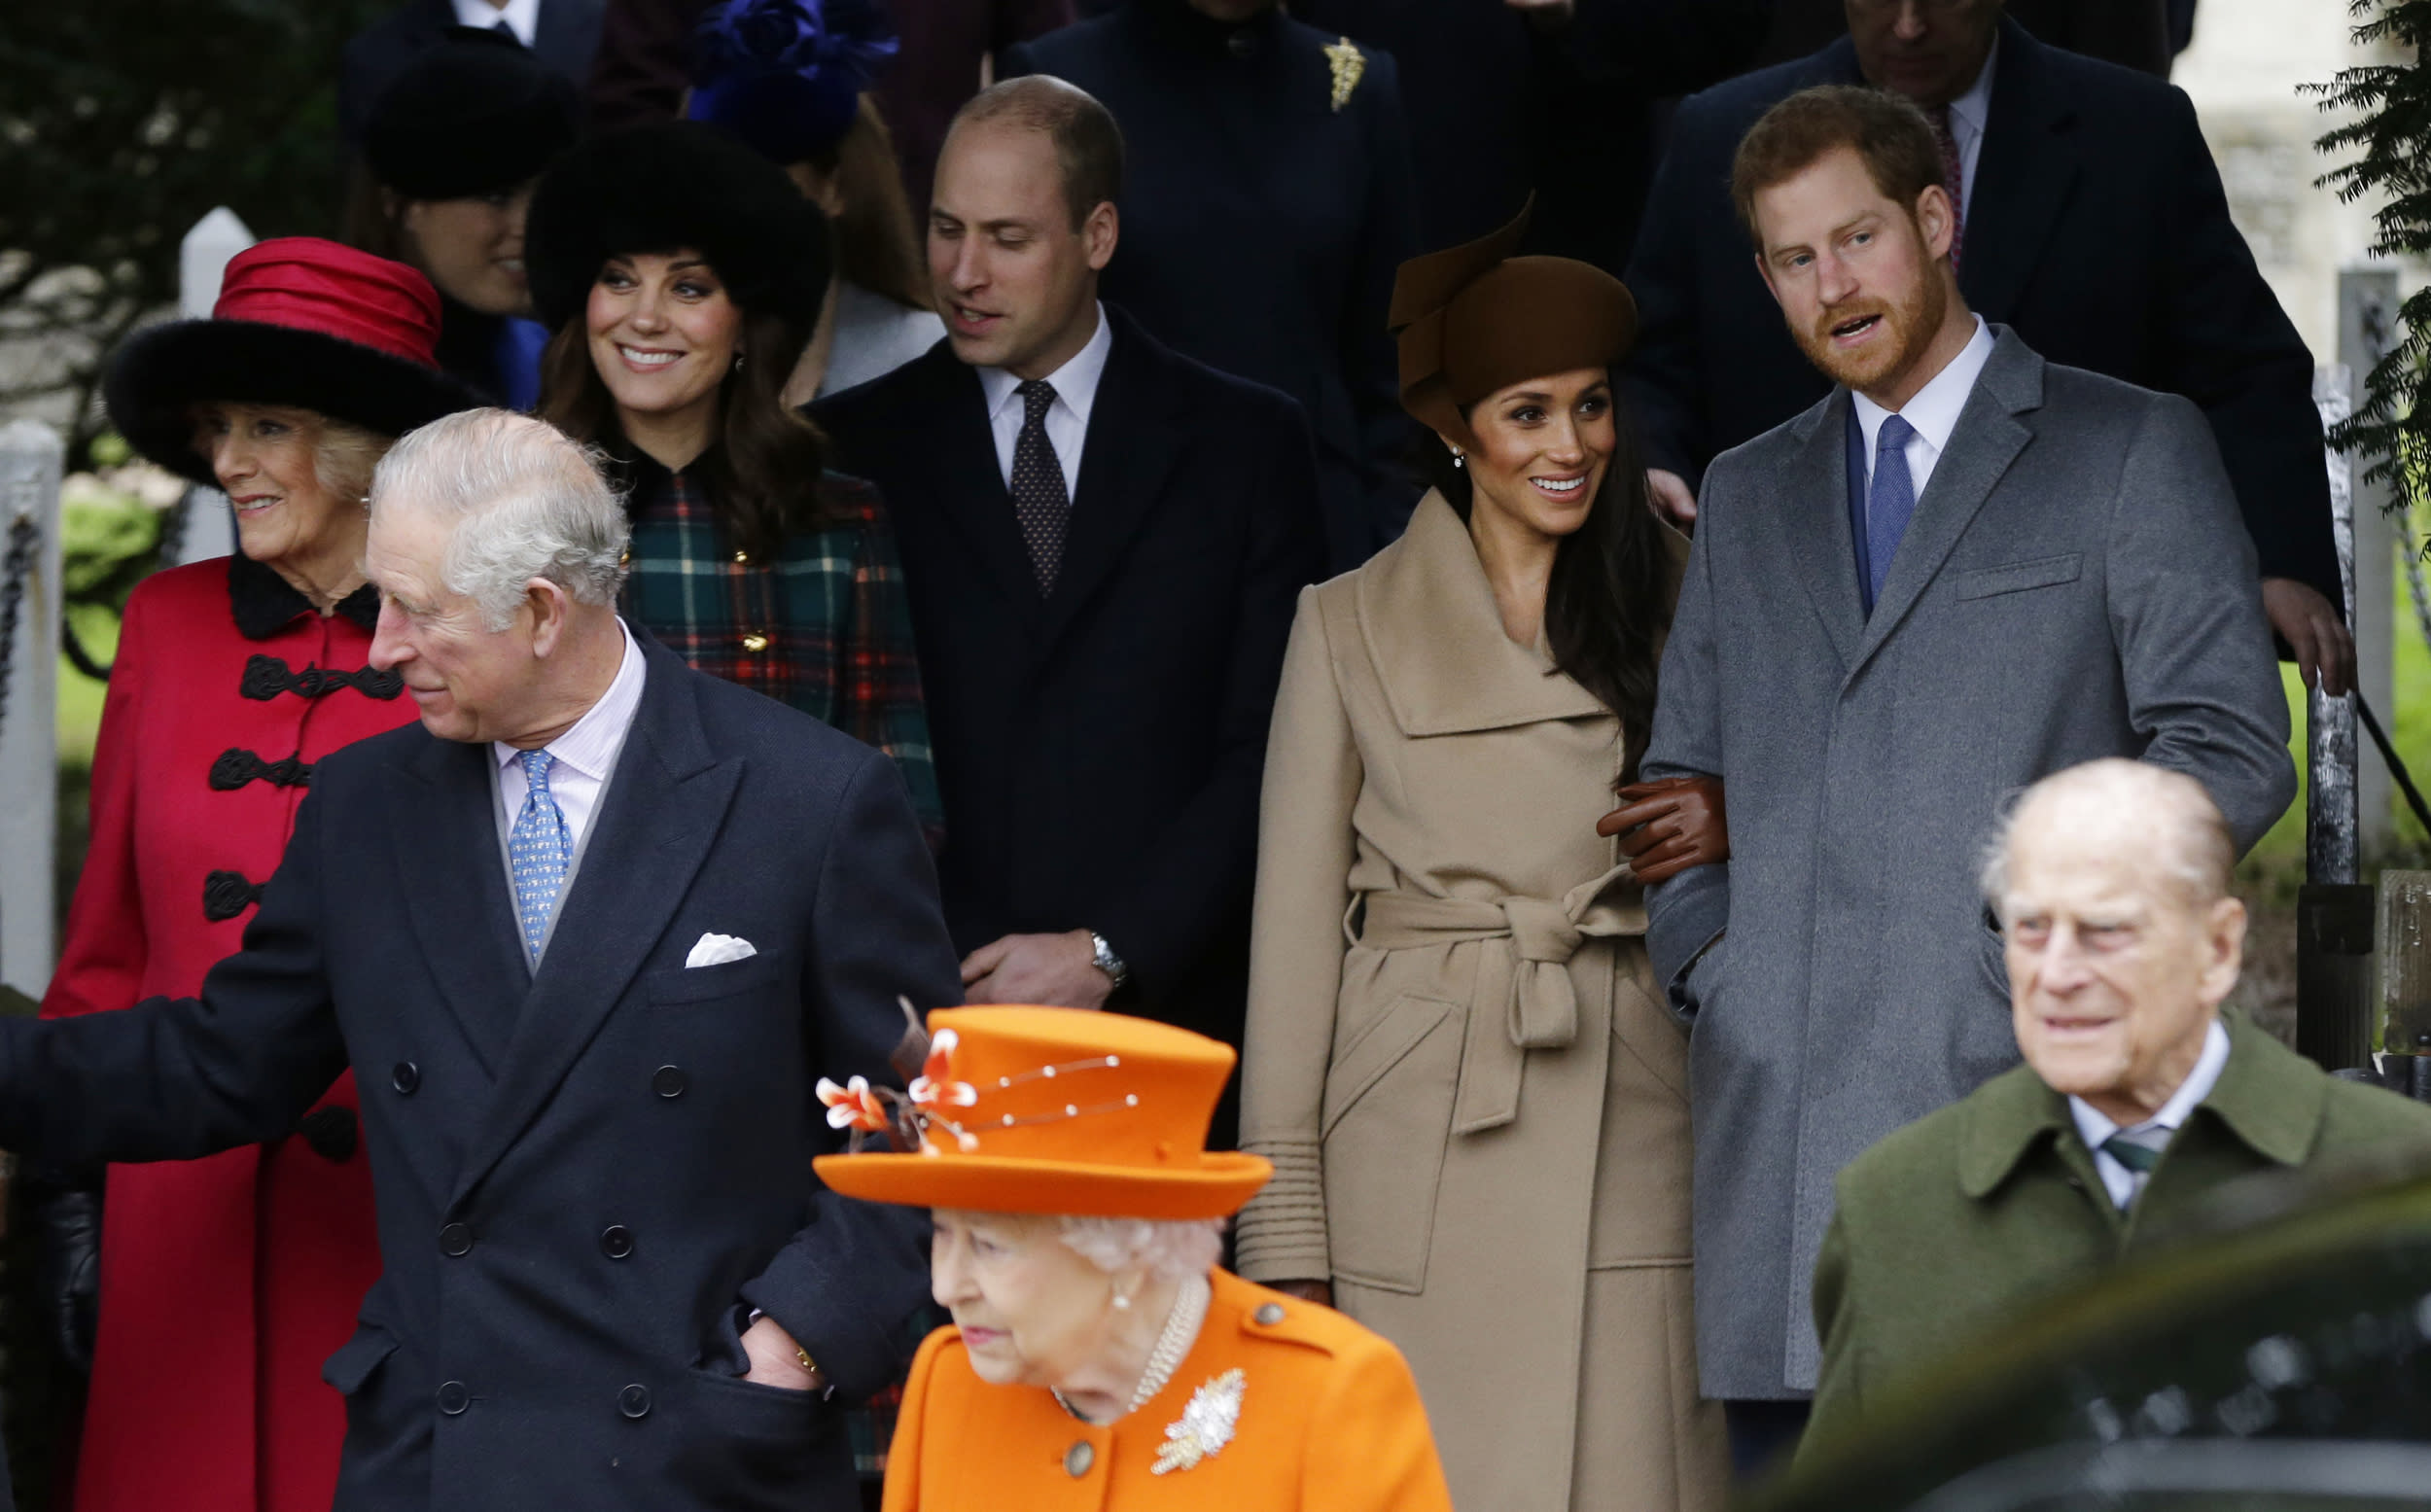 Front from left: Prince Charles, Queen Elizabeth II and Prince Philip. Rear From left, Camilla, Duchess of Cornwall, Kate, Duchess of Cambridge, Price William, Meghan Markle, and her fiancee Prince Harry, right, as they wait for the Queen to leave by car following the traditional Christmas Day church service, at St. Mary Magdalene Church in Sandringham, England, Monday, Dec. 25, 2017. (AP Photo/Alastair Grant)